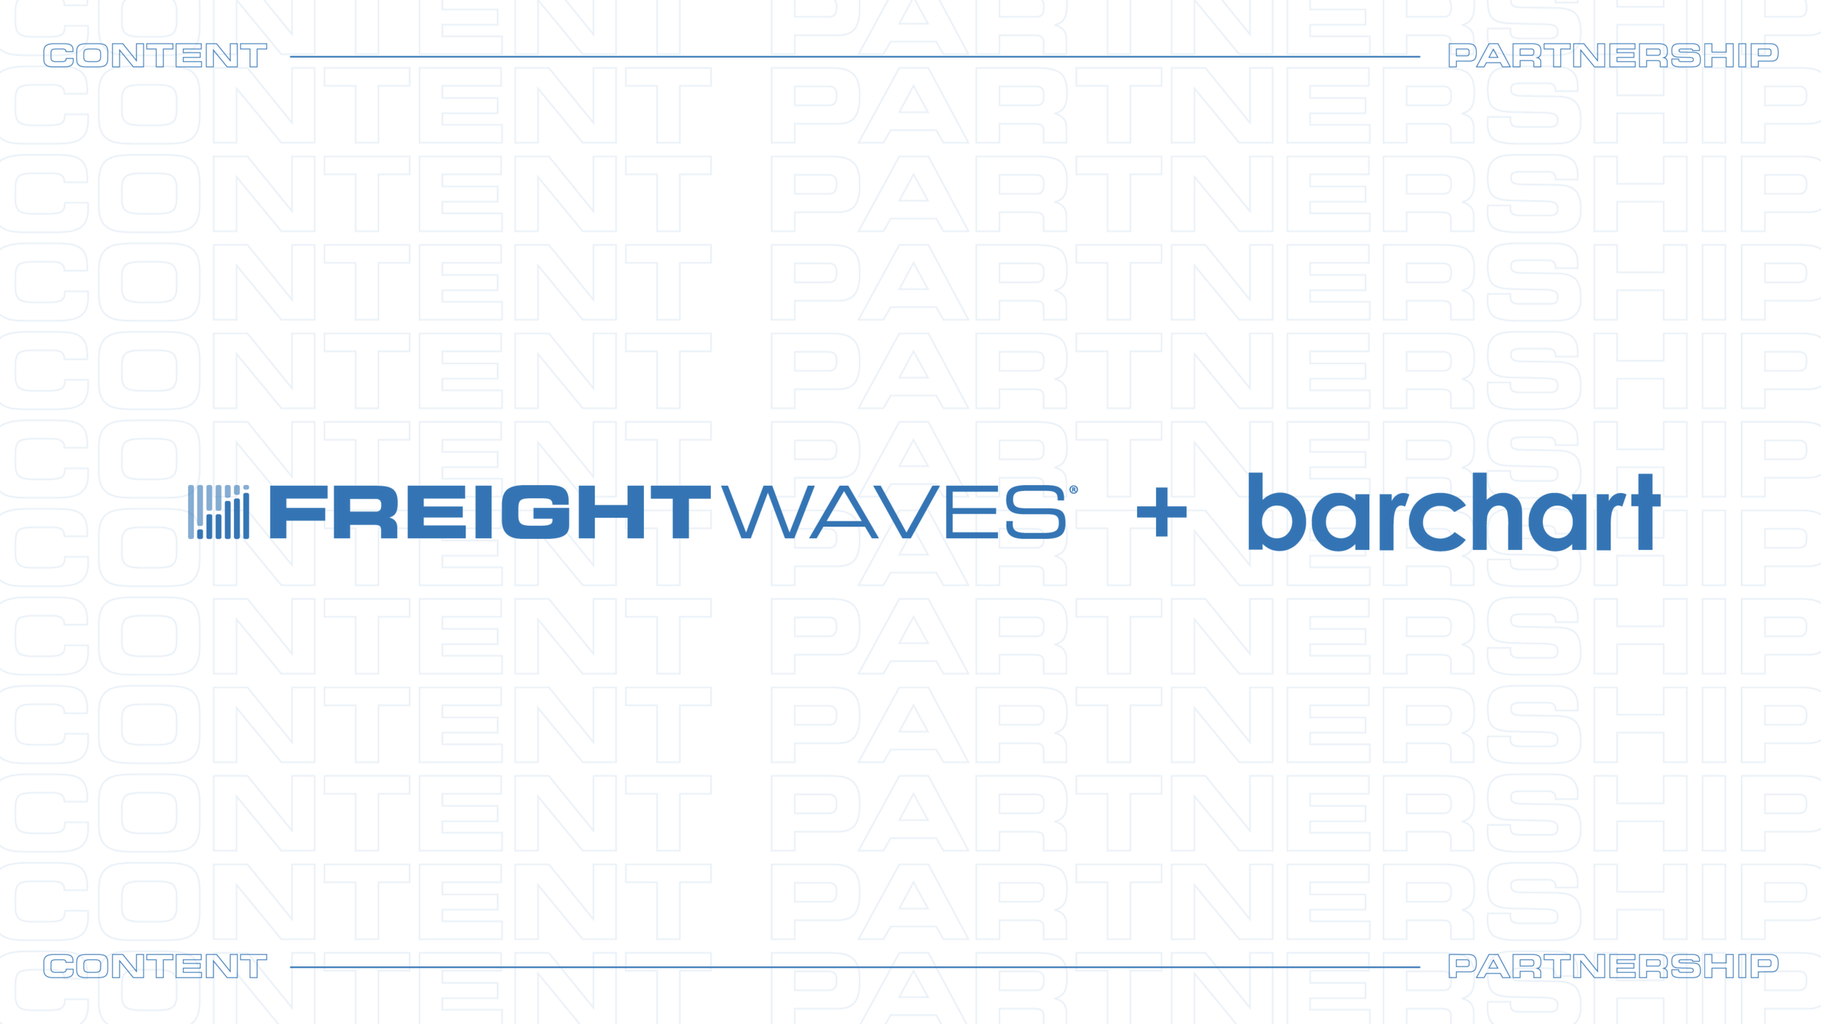 Photo of Barchart partners with FreightWaves to deliver freight news and data on Barchart.com